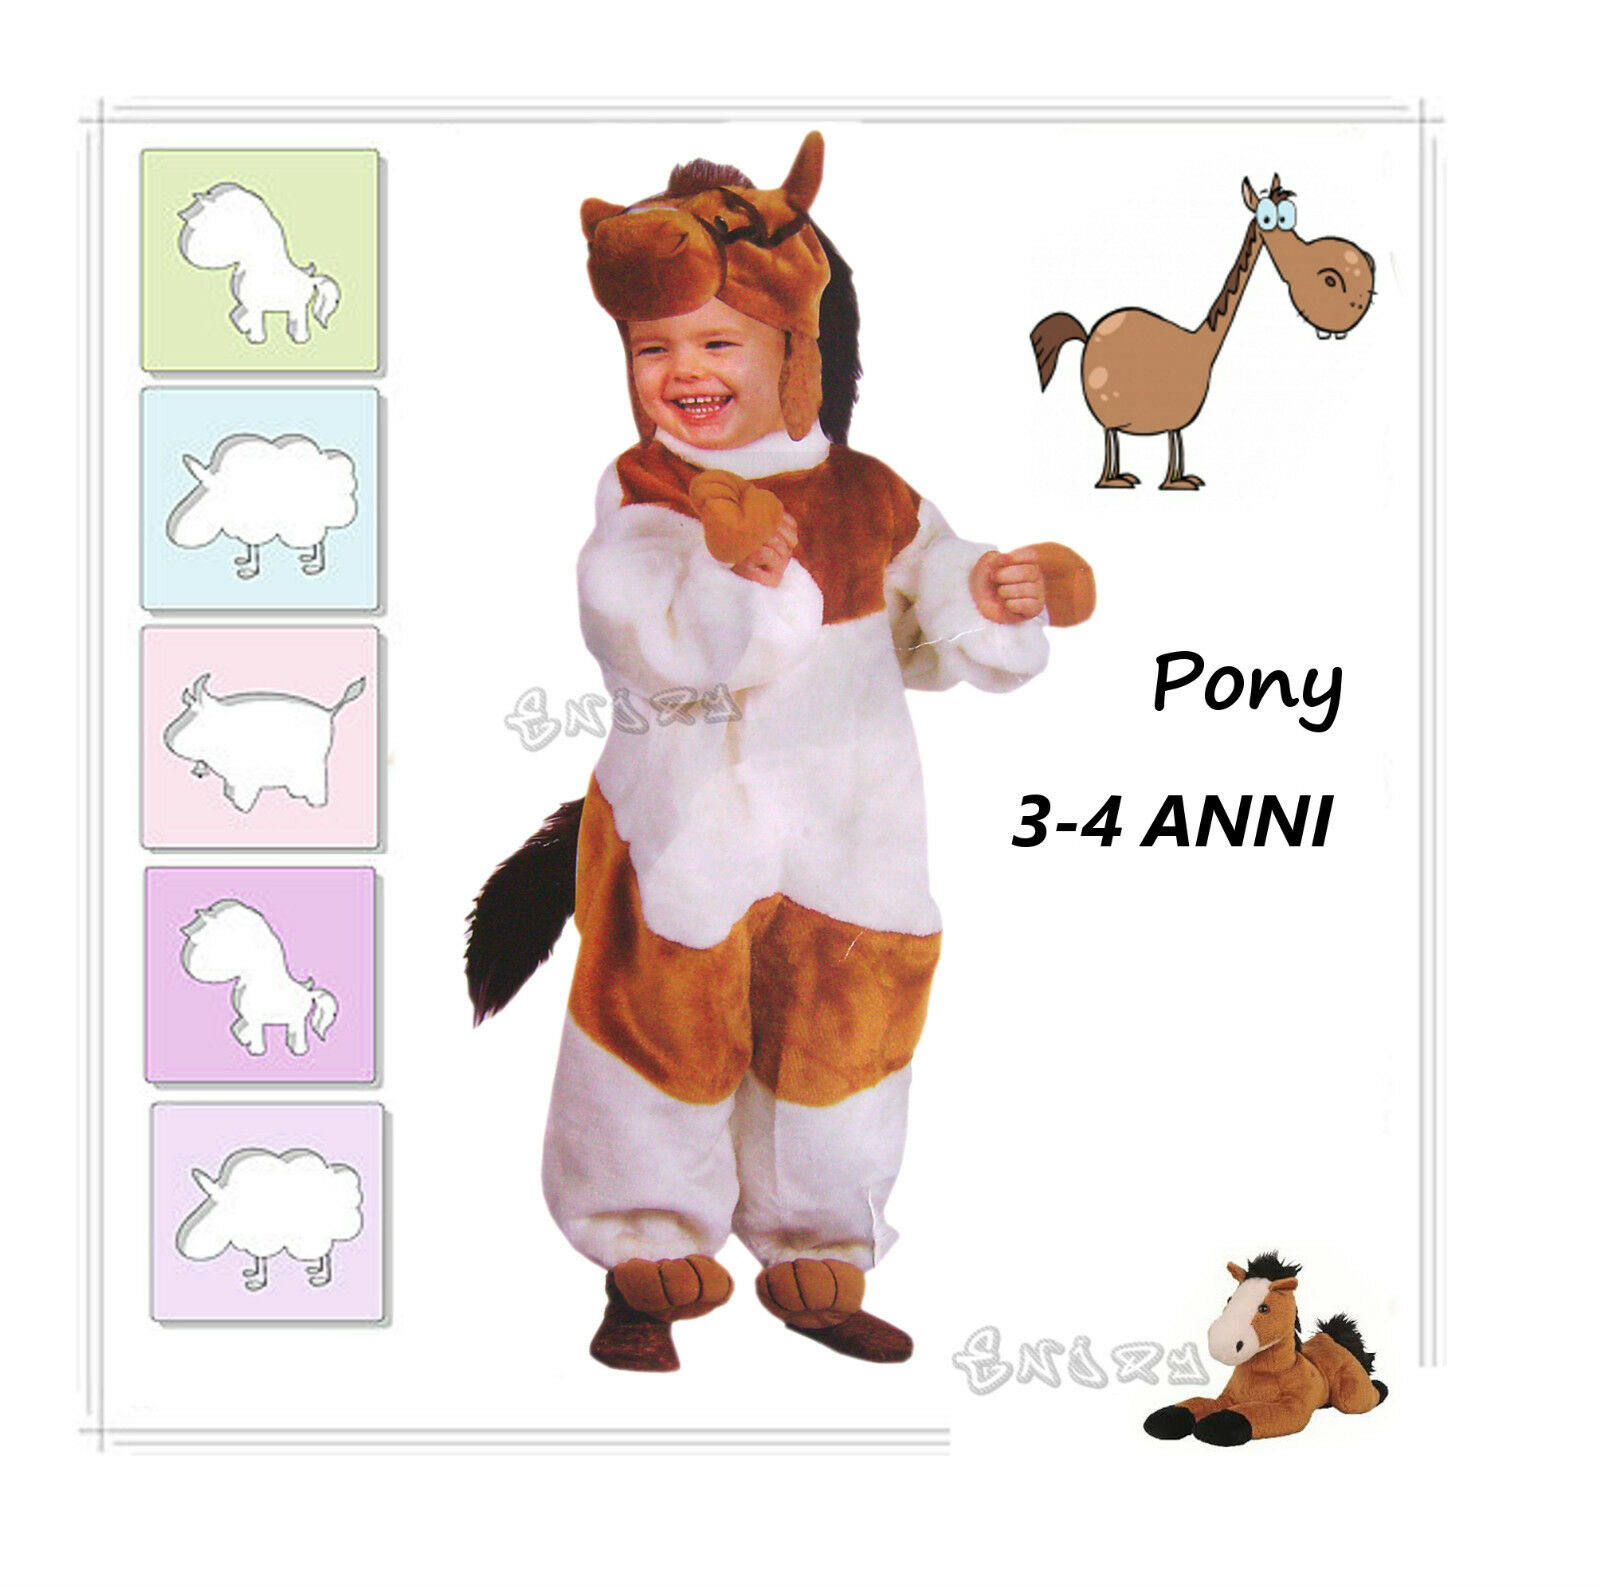 Carnival Dress Pony Costume Pony 3 - 4 Ages